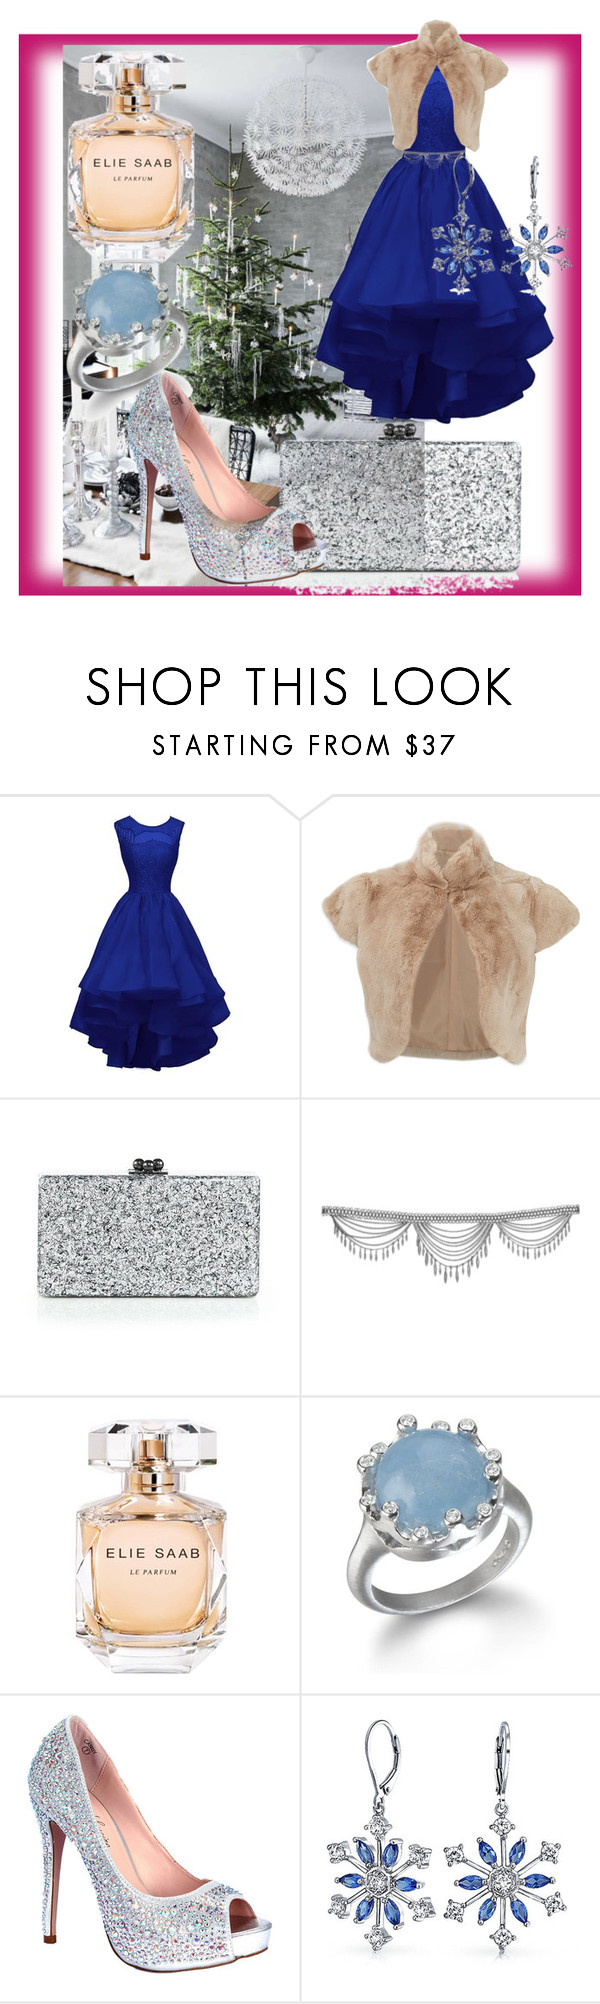 """""""Xmas outfit - the cool colors"""" by theladyintheblackdress ❤ liked on Polyvore featuring Adrienne Landau, Edie Parker, Elie Saab, Lauren Lorraine and Bling Jewelry"""